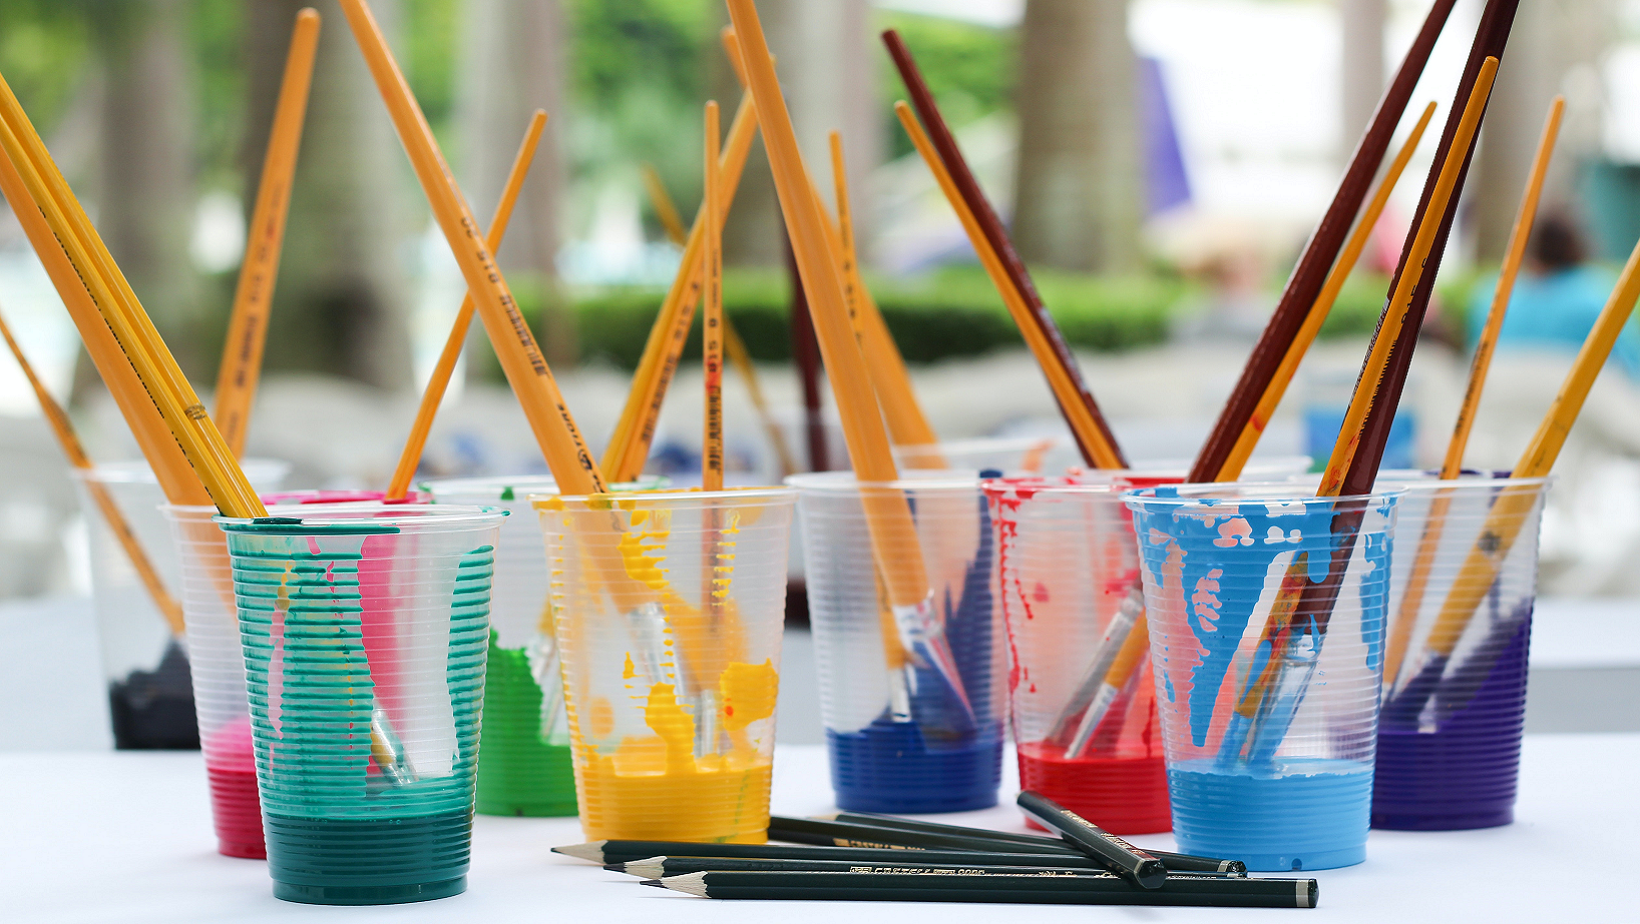 Brushes In Paint Plastic Cups